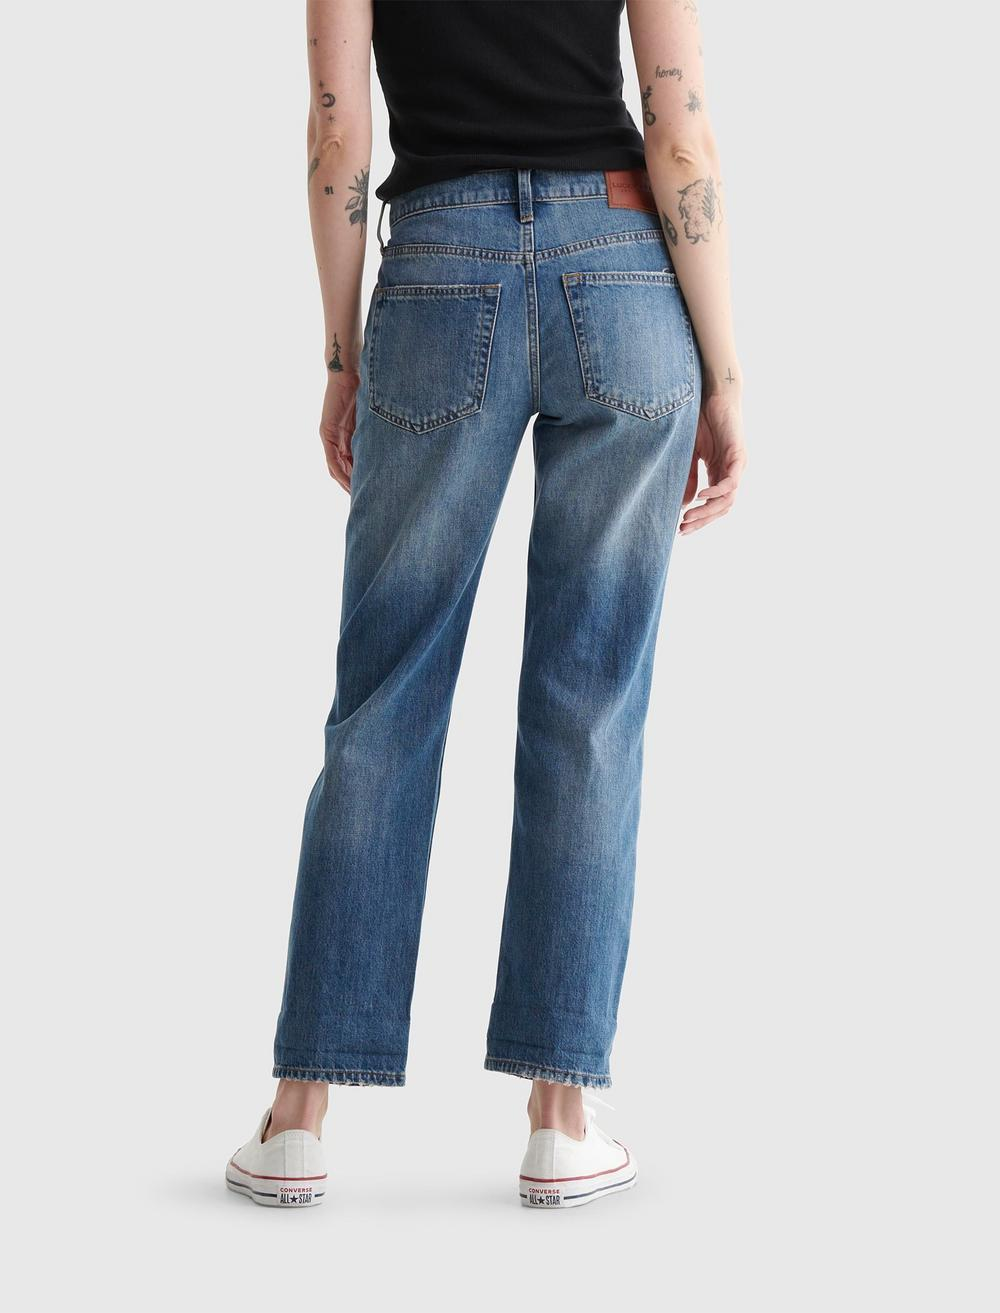 THE MID RISE BOY JEAN, image 5